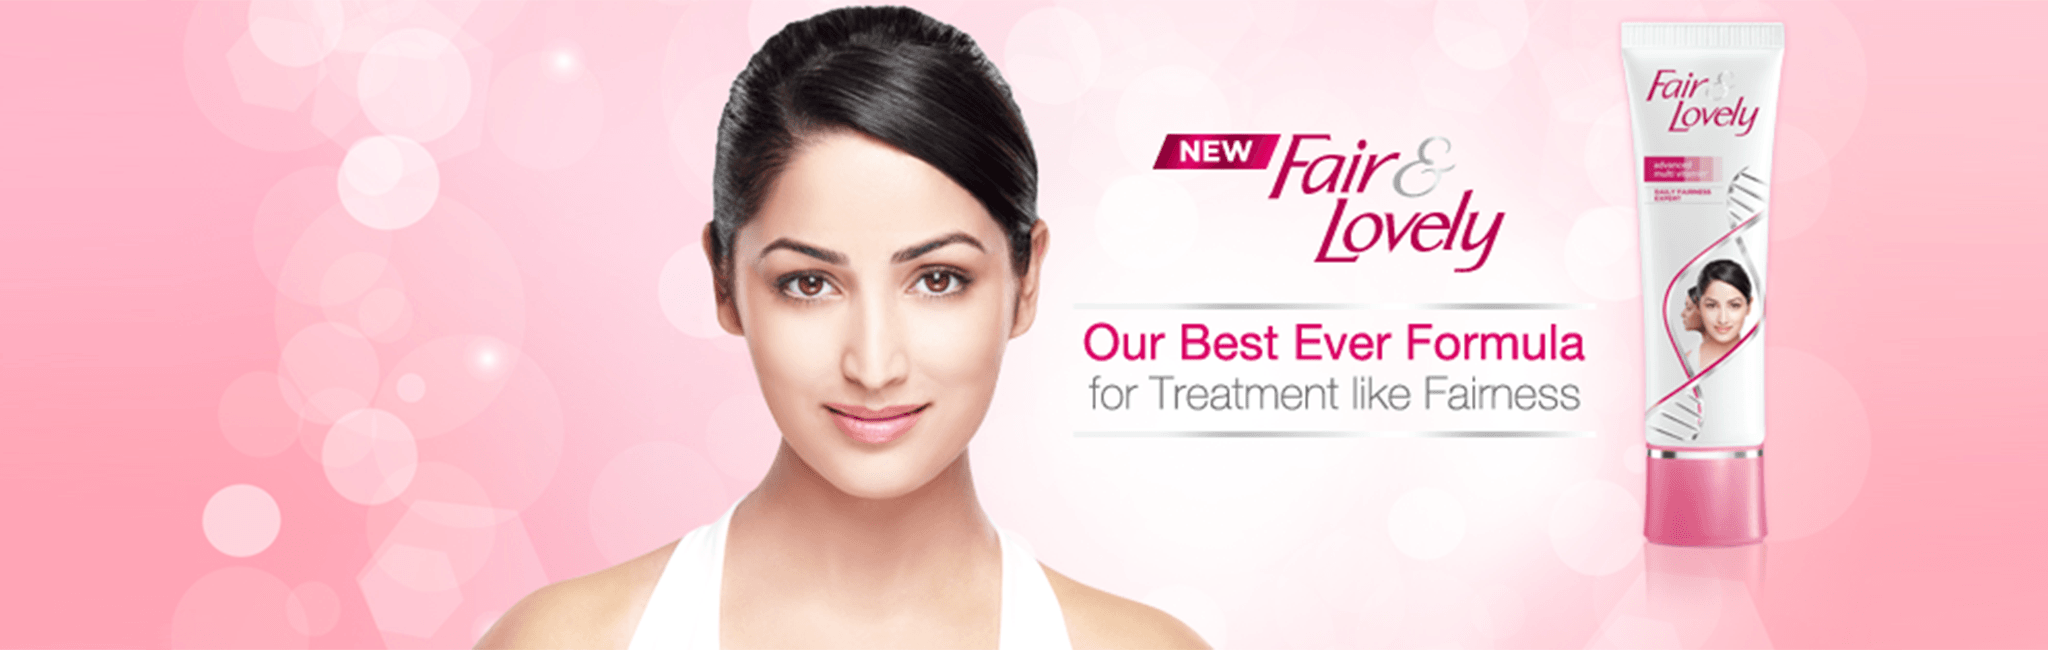 Fair & Lovely Banner